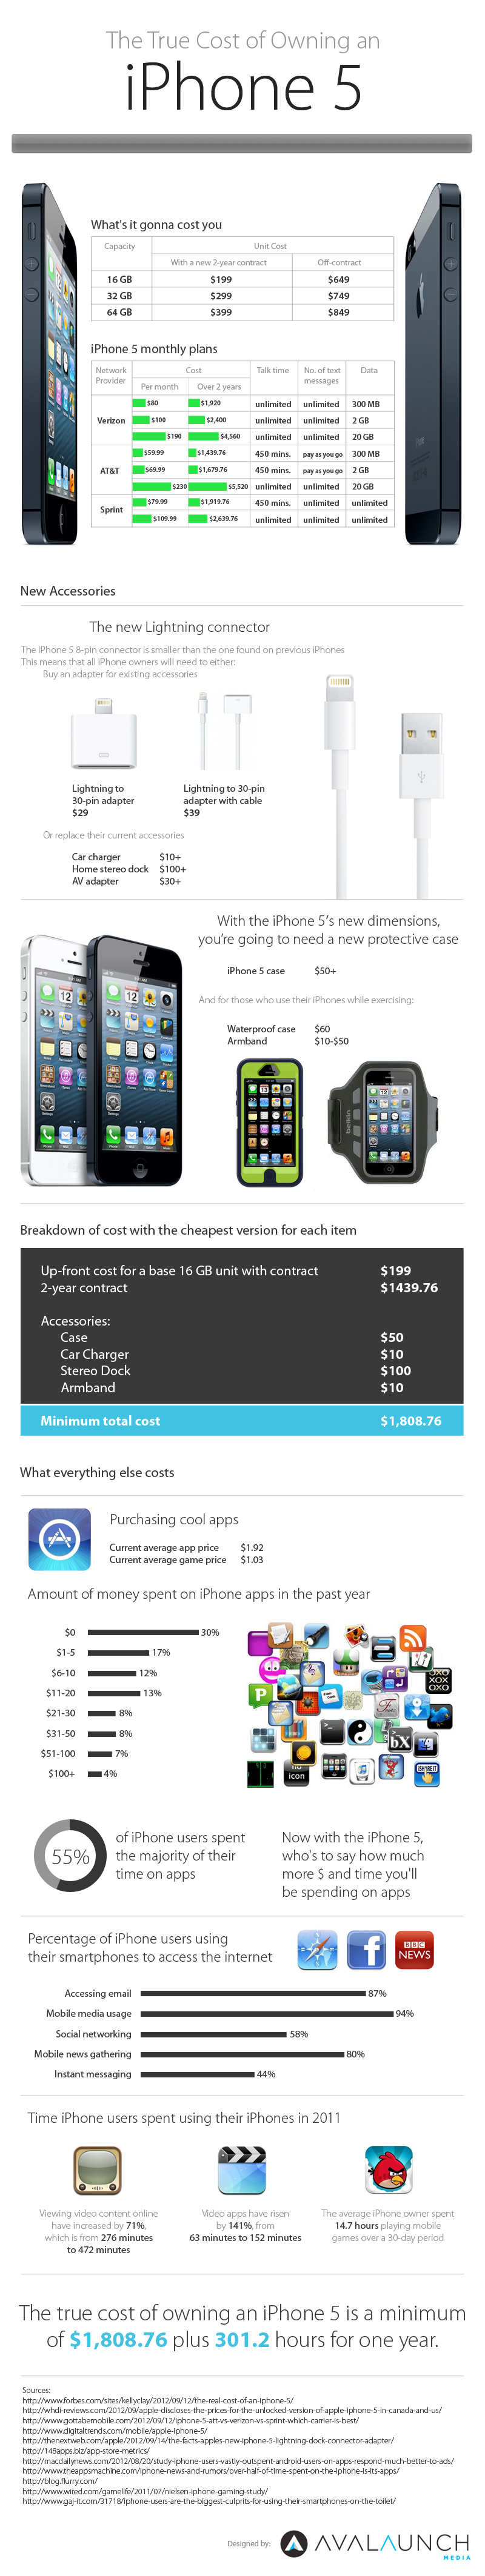 The iPhone 5 Will Cost You at Least ,800 [INFOGRAPHIC]